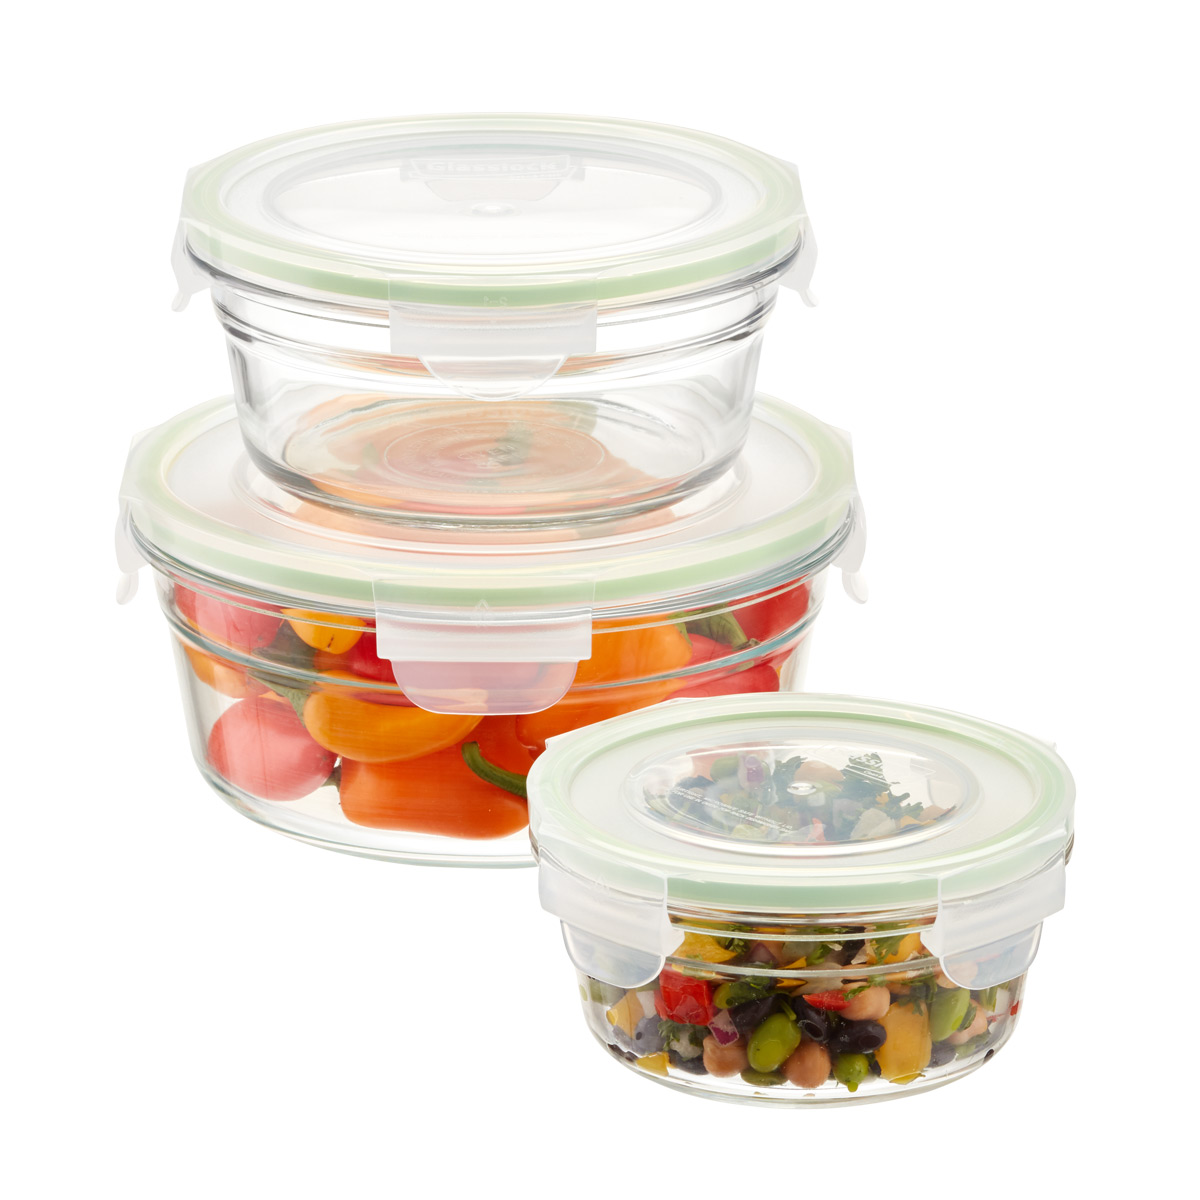 Glasslock Round Food Containers with Lids